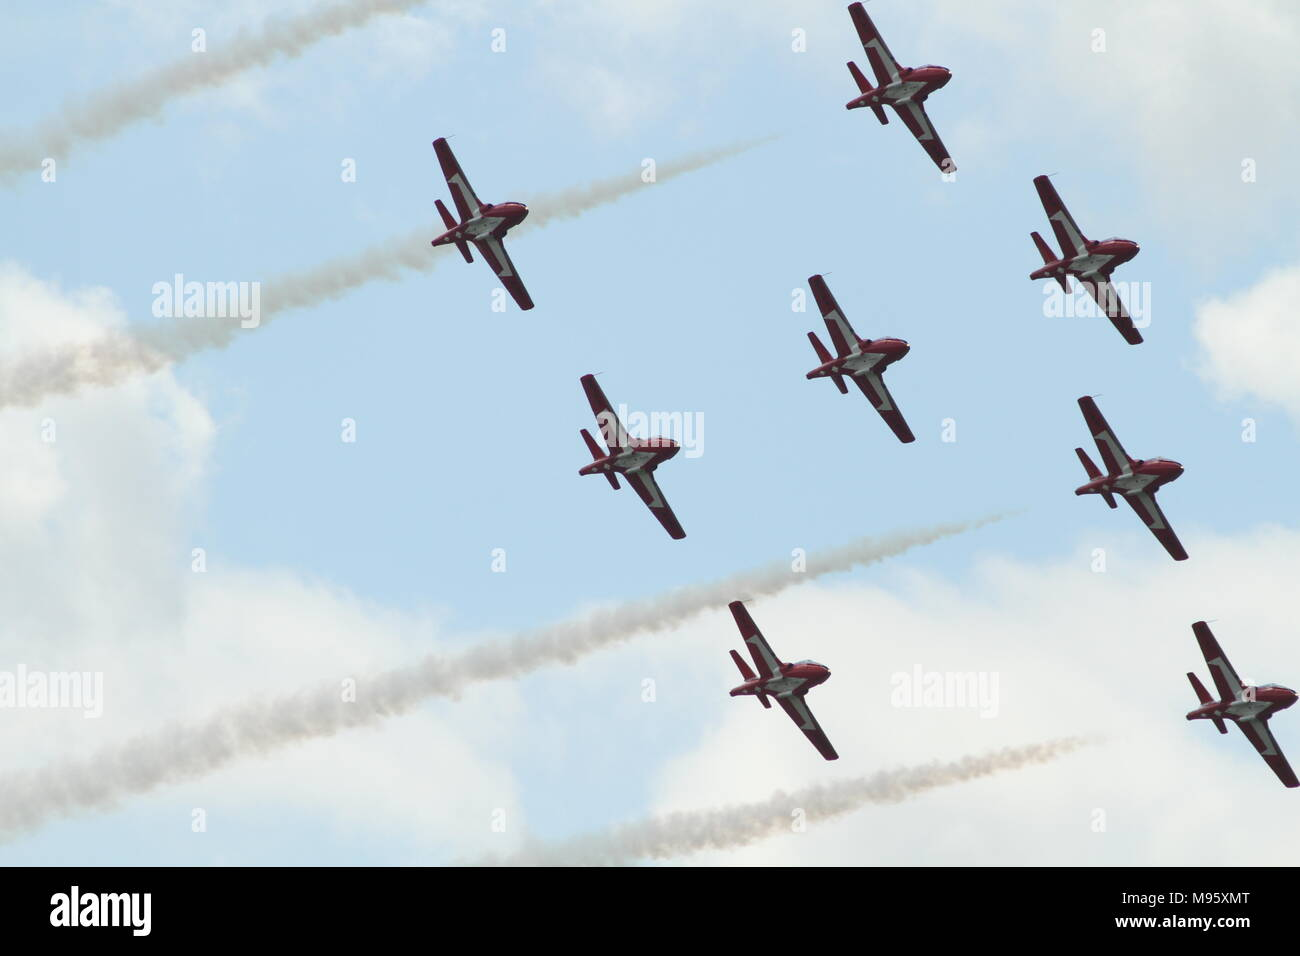 Canadian Forces 431 Air Demonstration Squadron also know as the snowbirds performing at the Hamilton Air Show Stock Photo